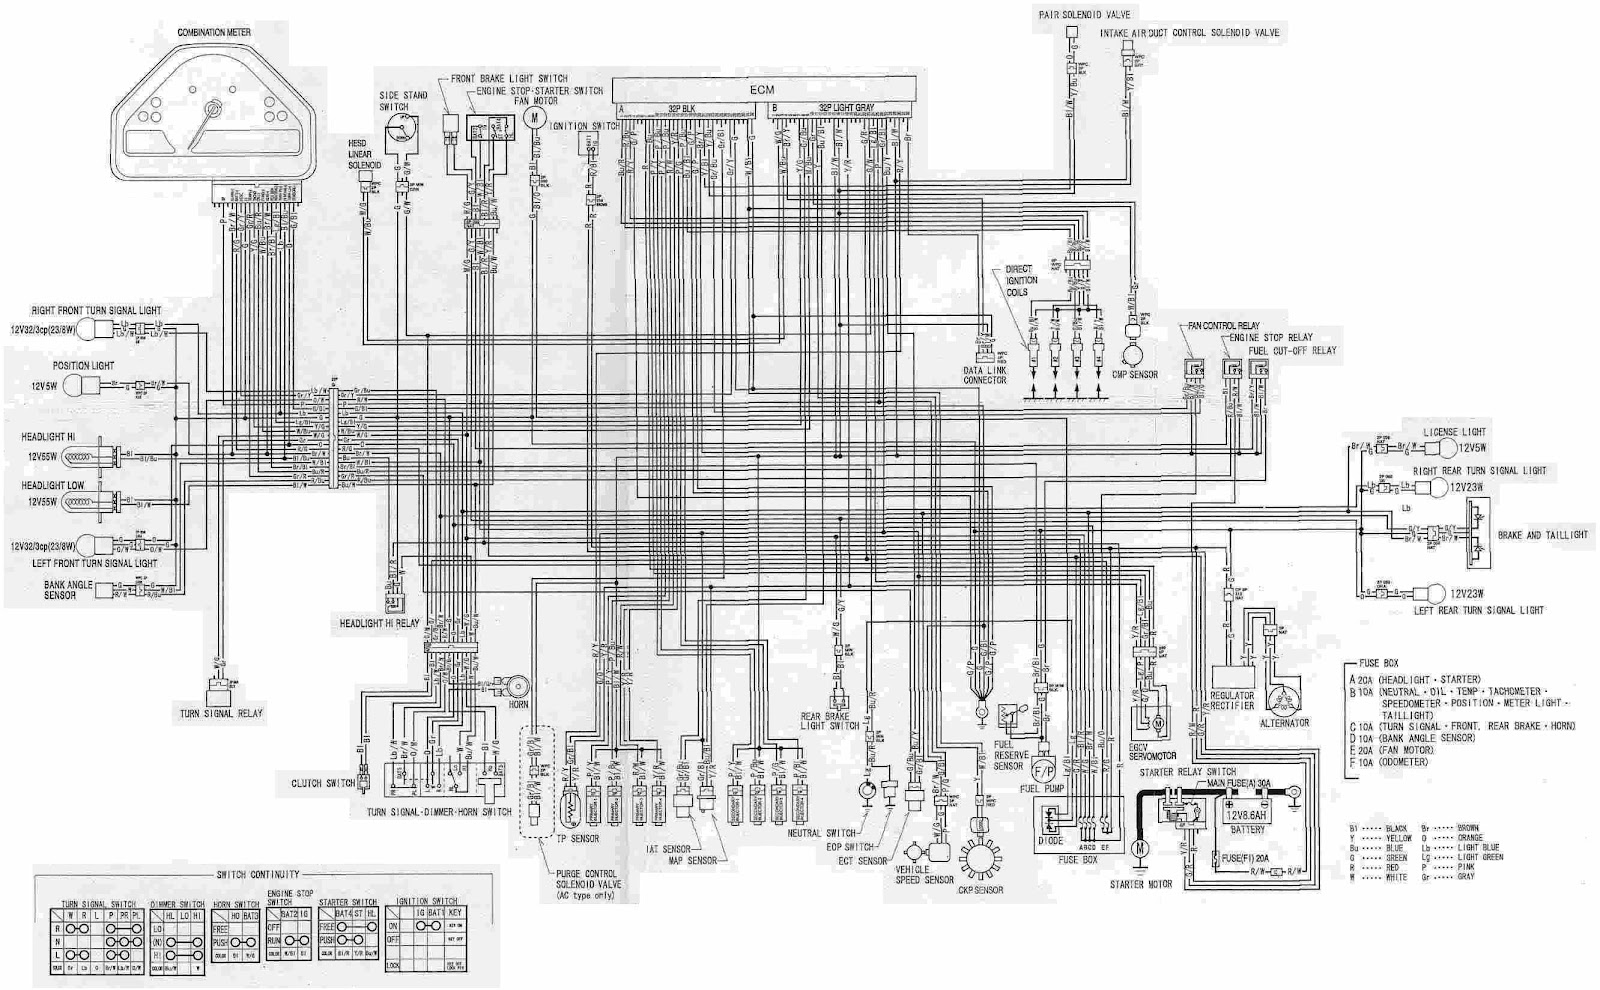 [EQHS_1162]  Honda Cbr1000rr 2006 Wiring Diagram Diagram Base Website Wiring Diagram -  VENNDIAGRAMCOLORS.ORANGEANIMATION.IT | Honda Cbr Wiring Diagram |  | Diagram Base Website Full Edition - orangeanimation.it